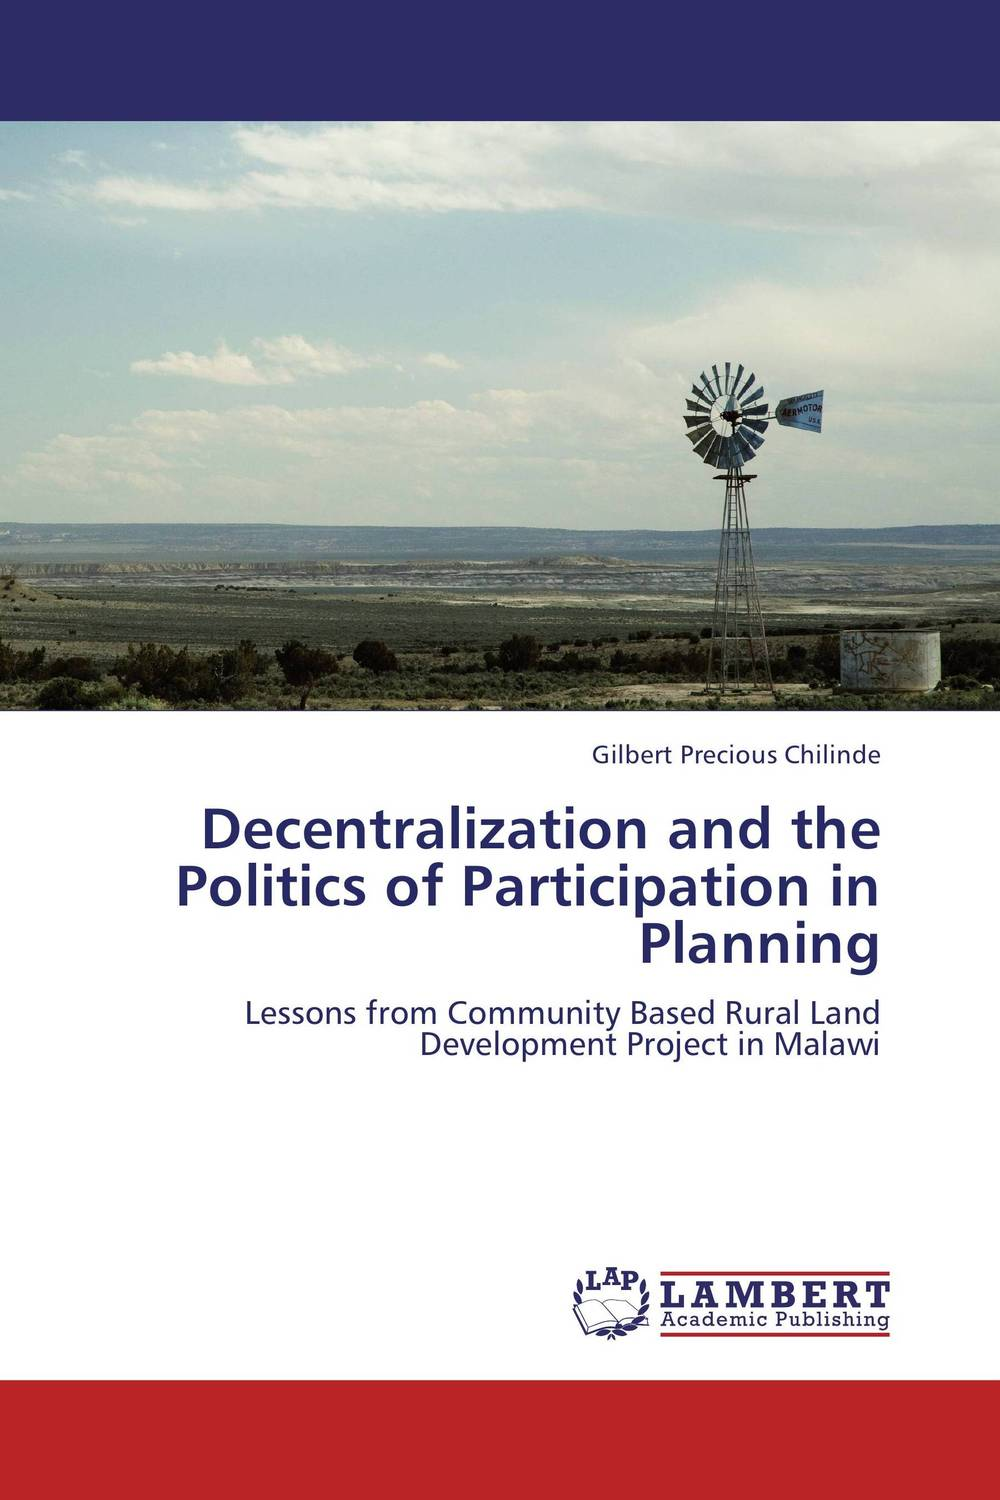 Decentralization and the Politics of Participation in Planning charles ii and the politics of access